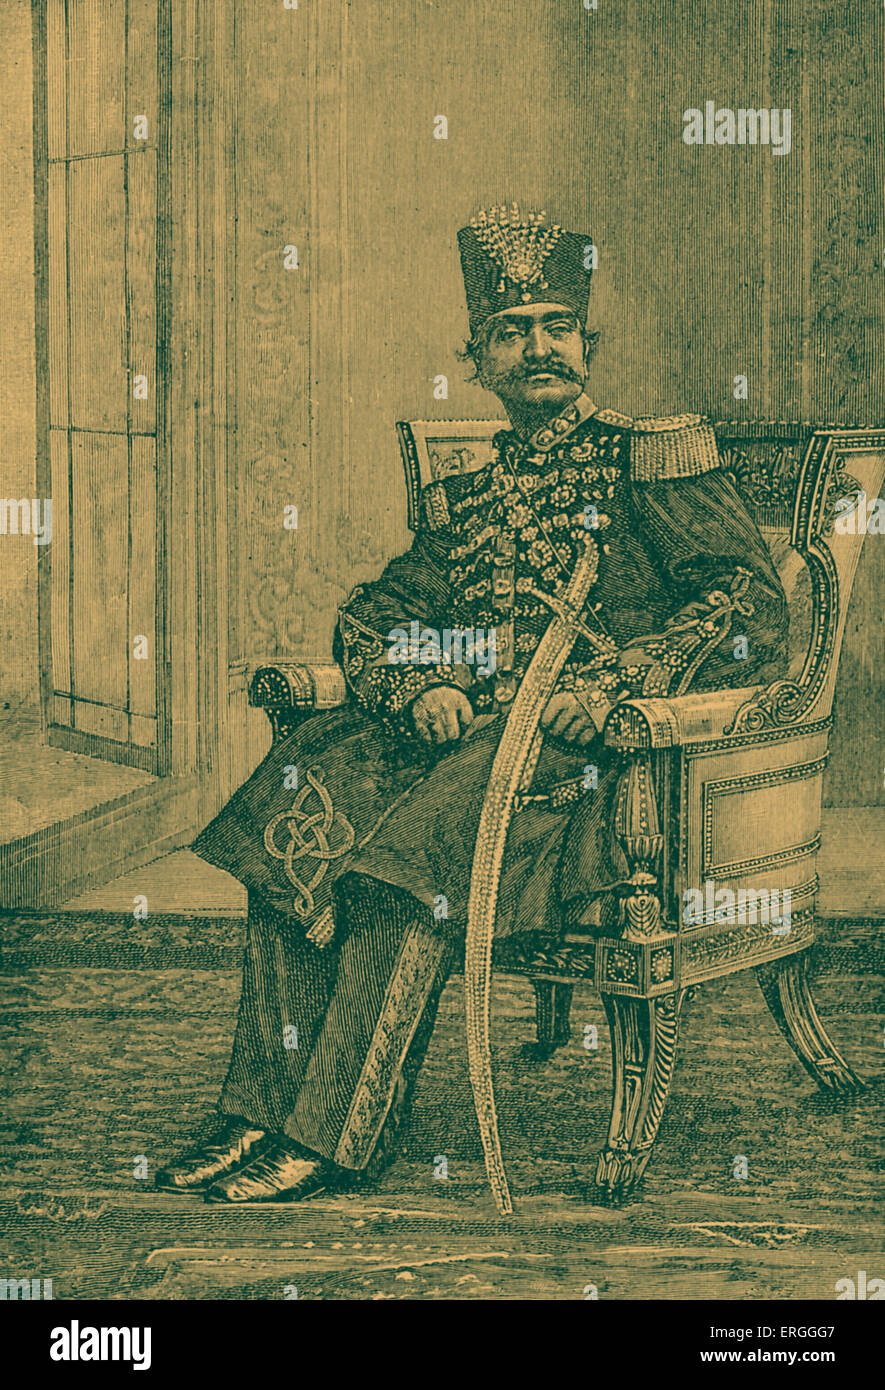 Naser al-Din Shah Qajar - portrait. King of Iran from 17 September 1848 - 1 May 1896 when he was assassinated. 16 - Stock Image